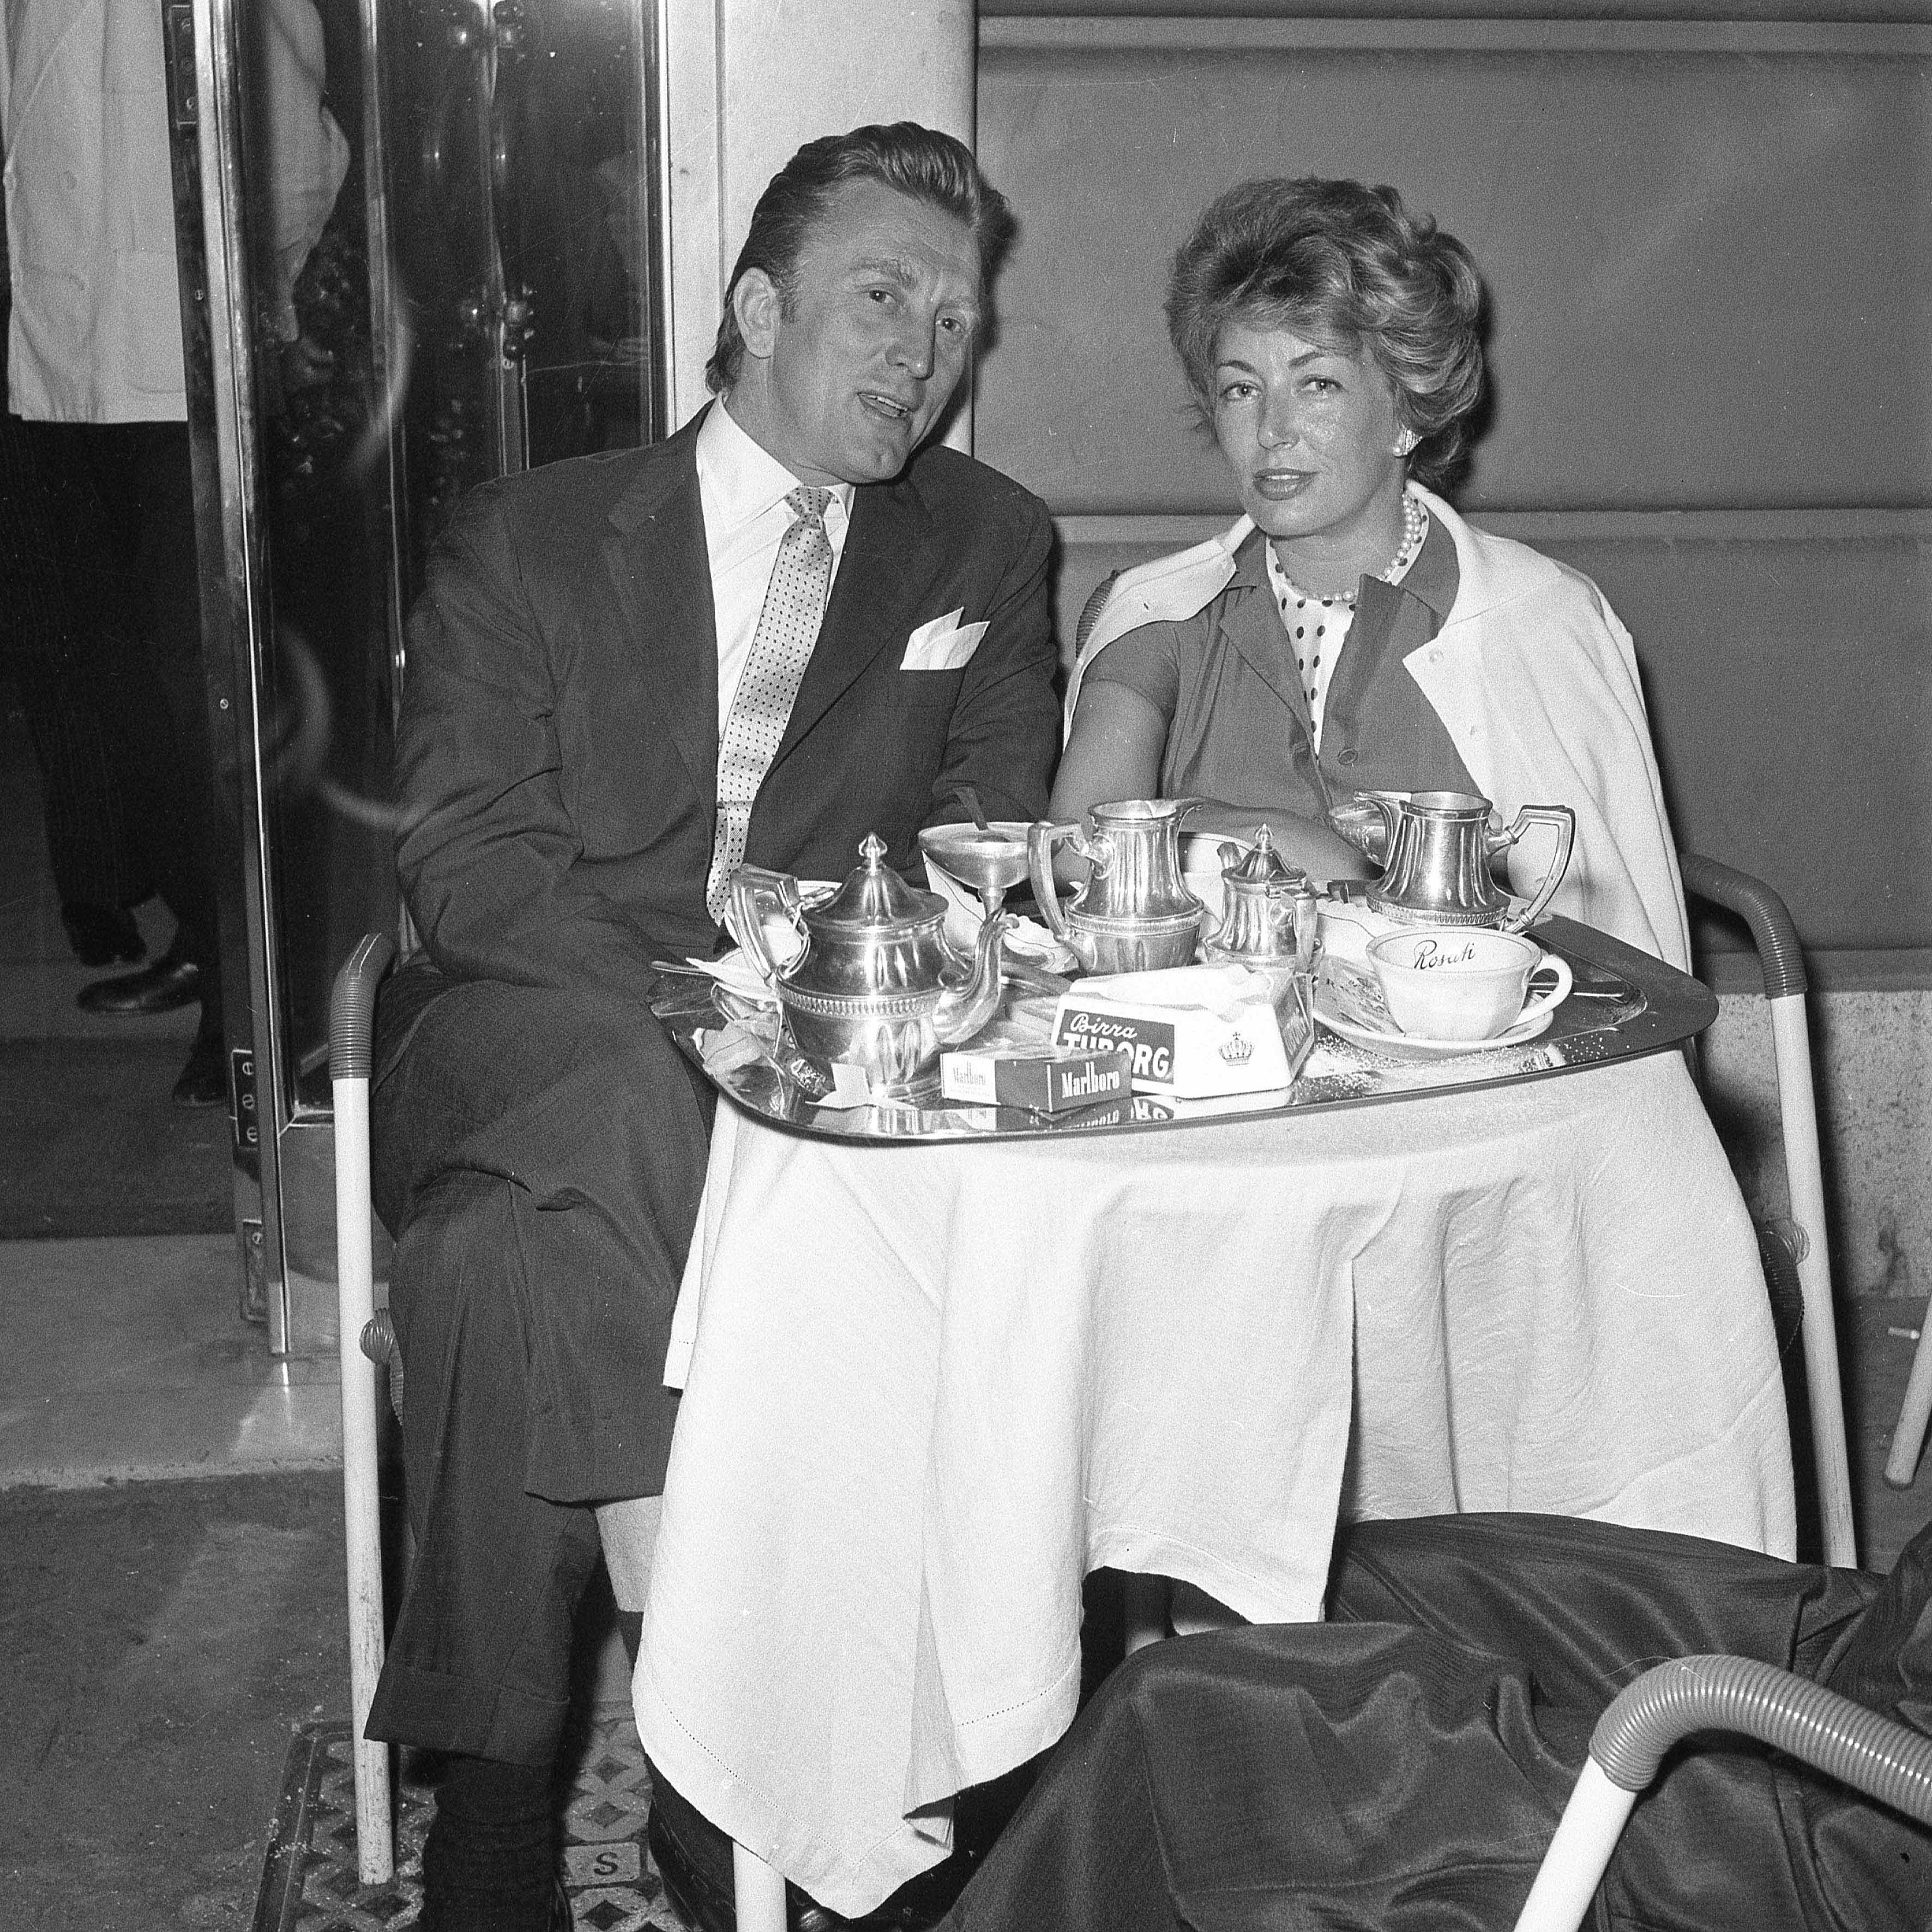 Anne Douglas and her husband Kirk Douglas at the coffee bar in Via Veneto, Rome 1958. | Photo: Getty Images